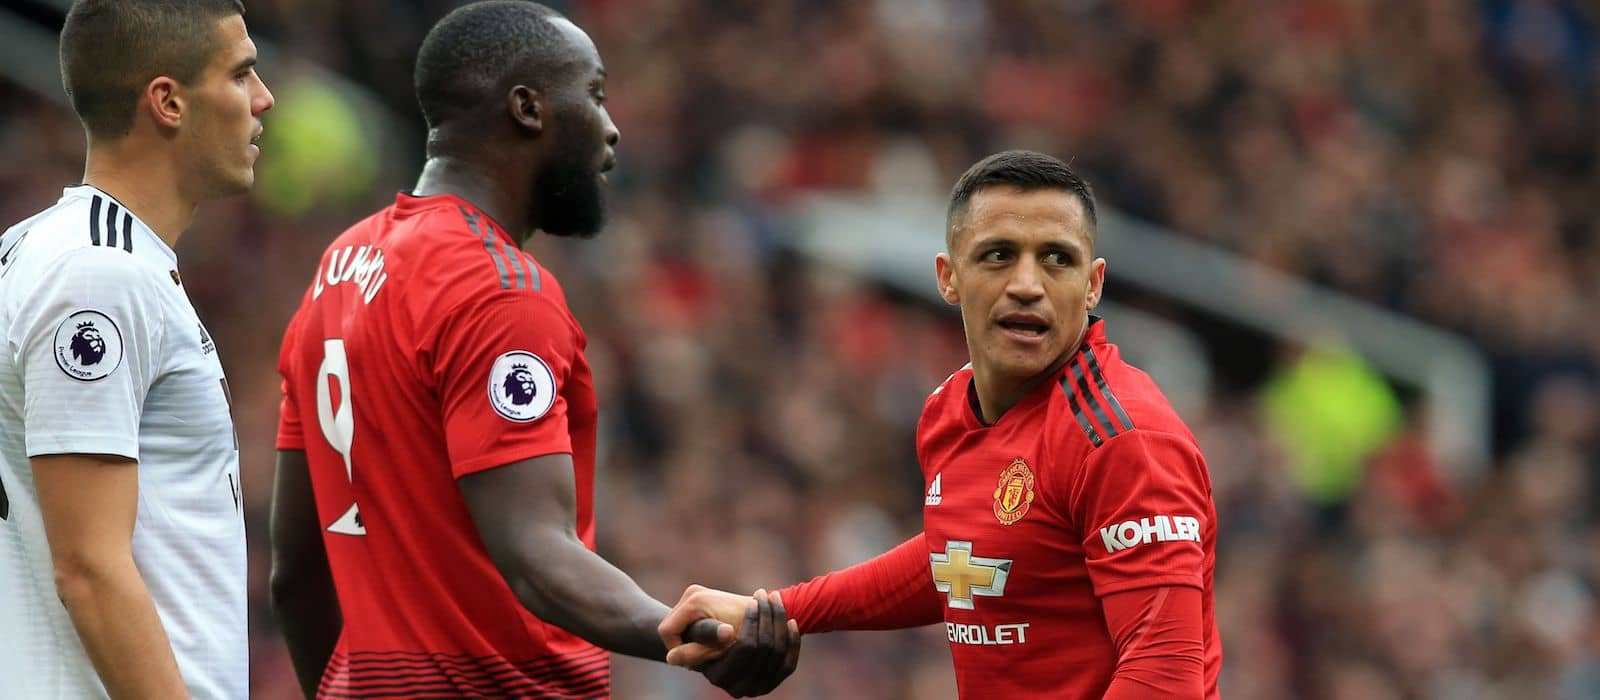 Inter Milan keen on Manchester United star Alexis Sanchez